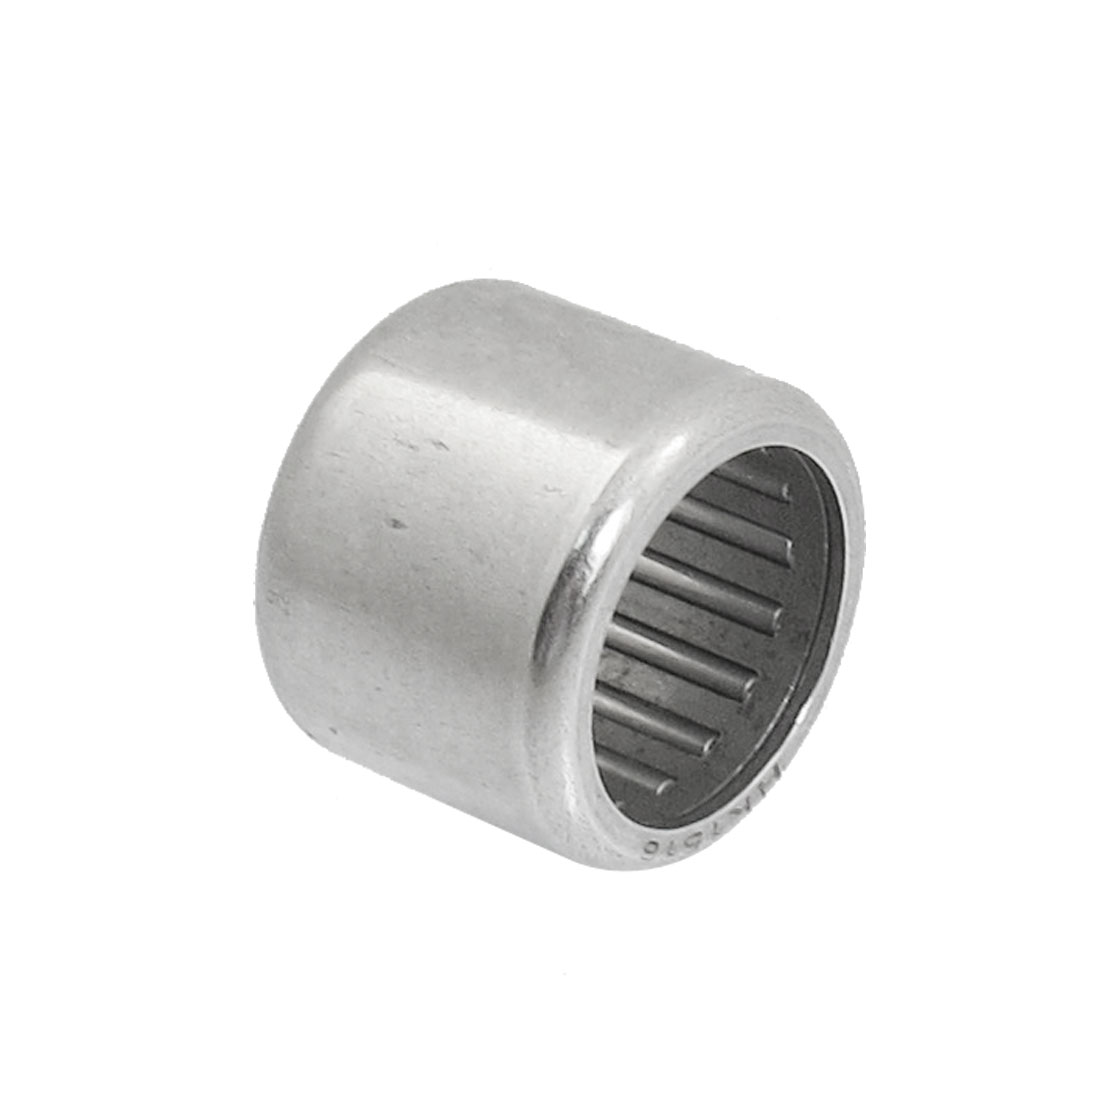 HK152016 15 x 20 x 16mm Drawn Cup Caged Drawn Cup Needle Roller Bearing